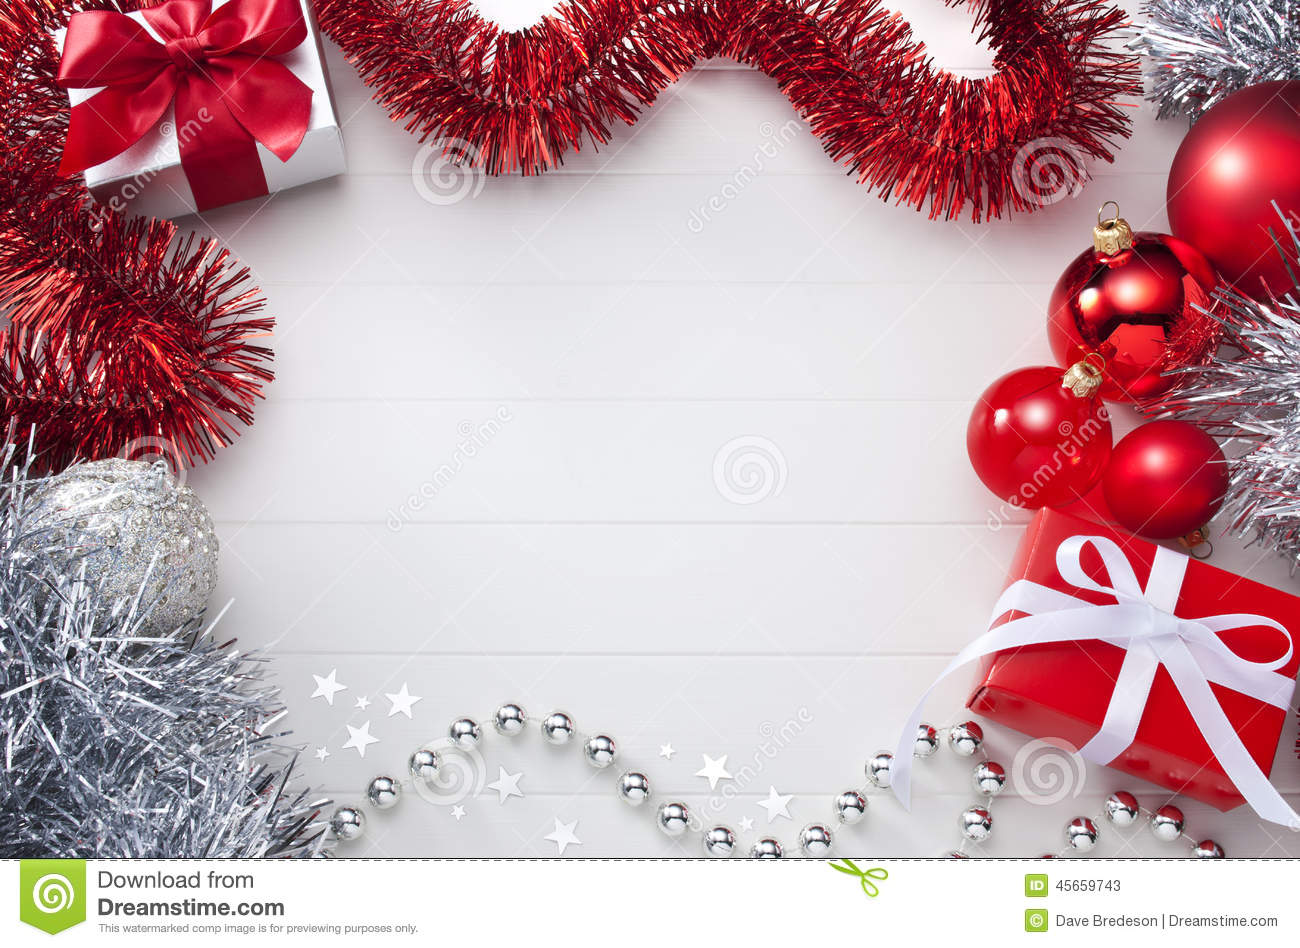 Christmas stock photos royalty free images white red christmas background a christmas background with a red and white theme voltagebd